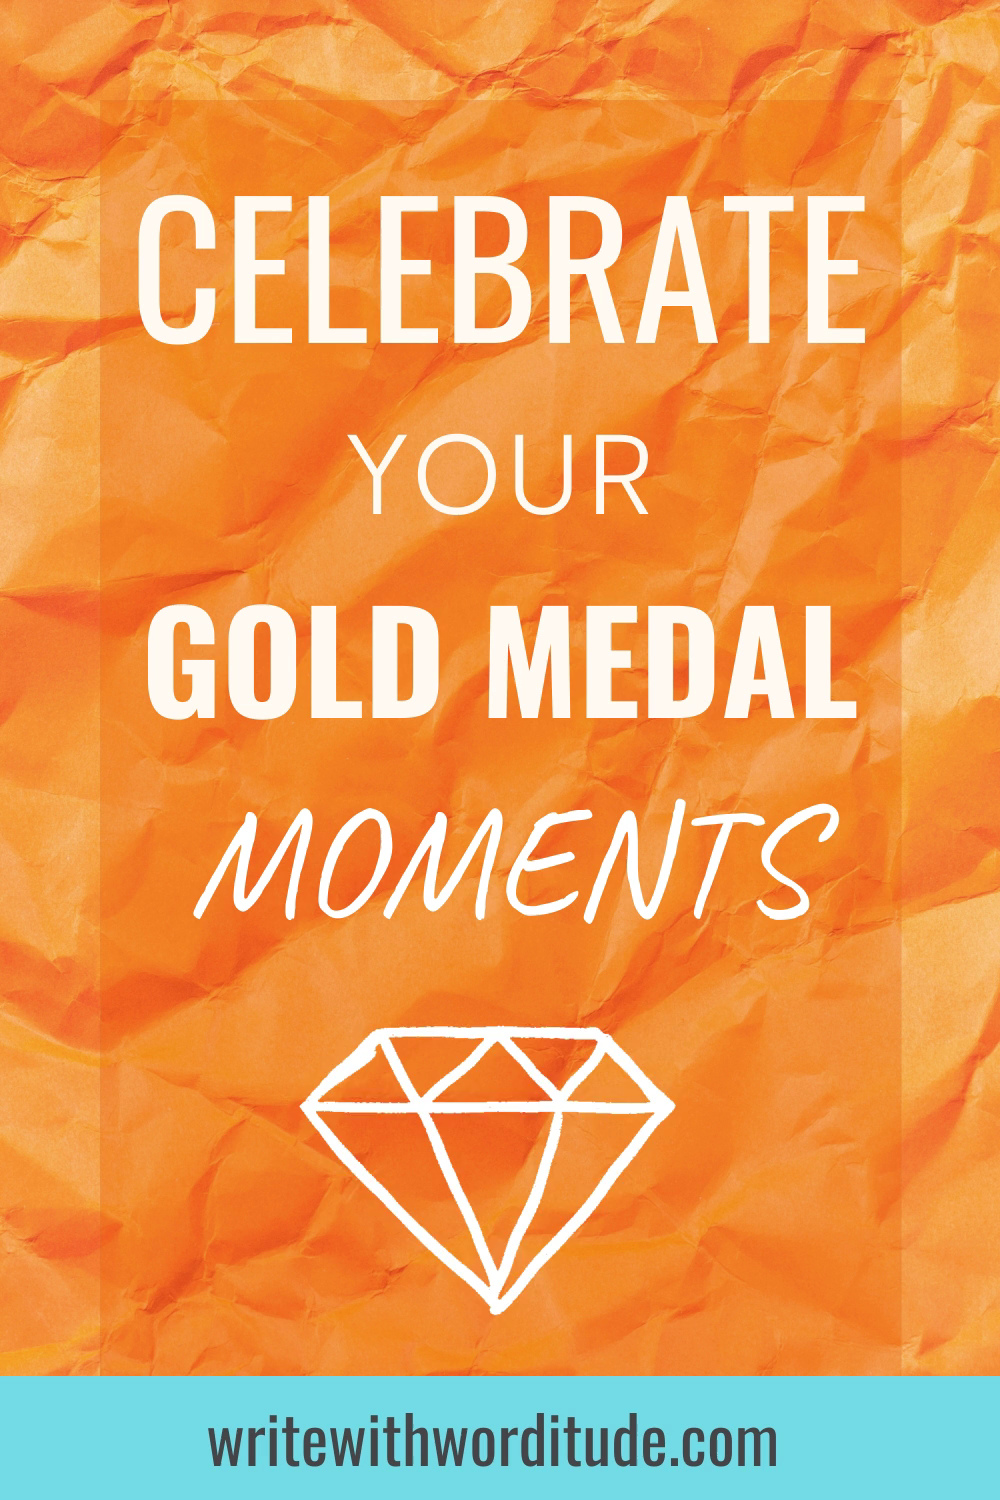 That Time I Was Interviewed By Carrie Green... In this podcast episode, I talk about 'Celebrating The Gold Medal Moments' - the moments worthy of acknowledgment and celebration that we often skip over! #smallbusiness #selfemployed #success #stories #inspiration #femaleentrepreneur #entrepreneur